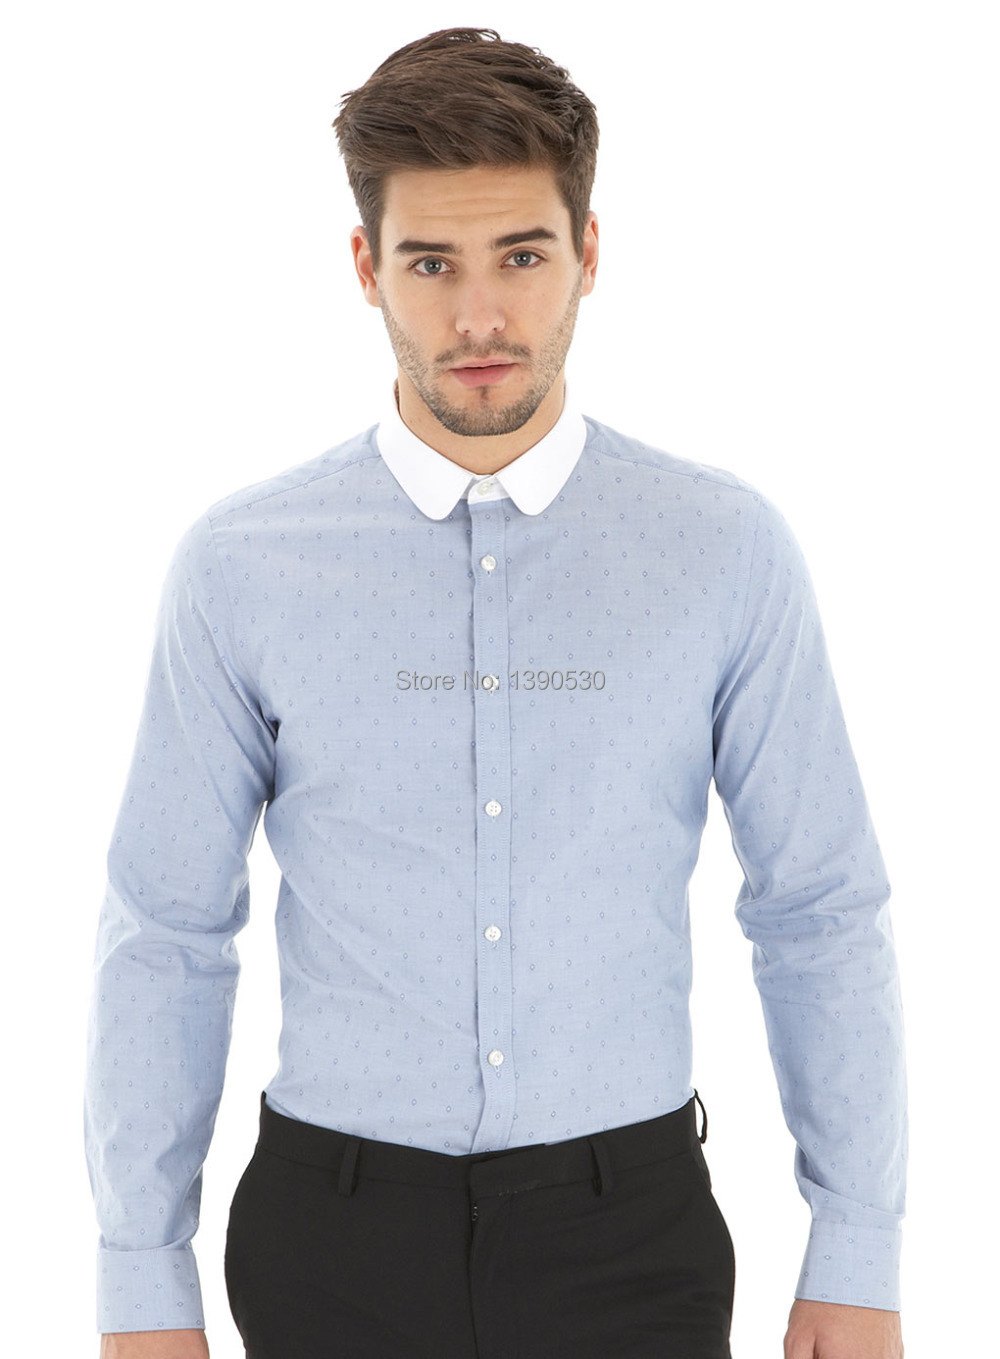 Shirt design tailor